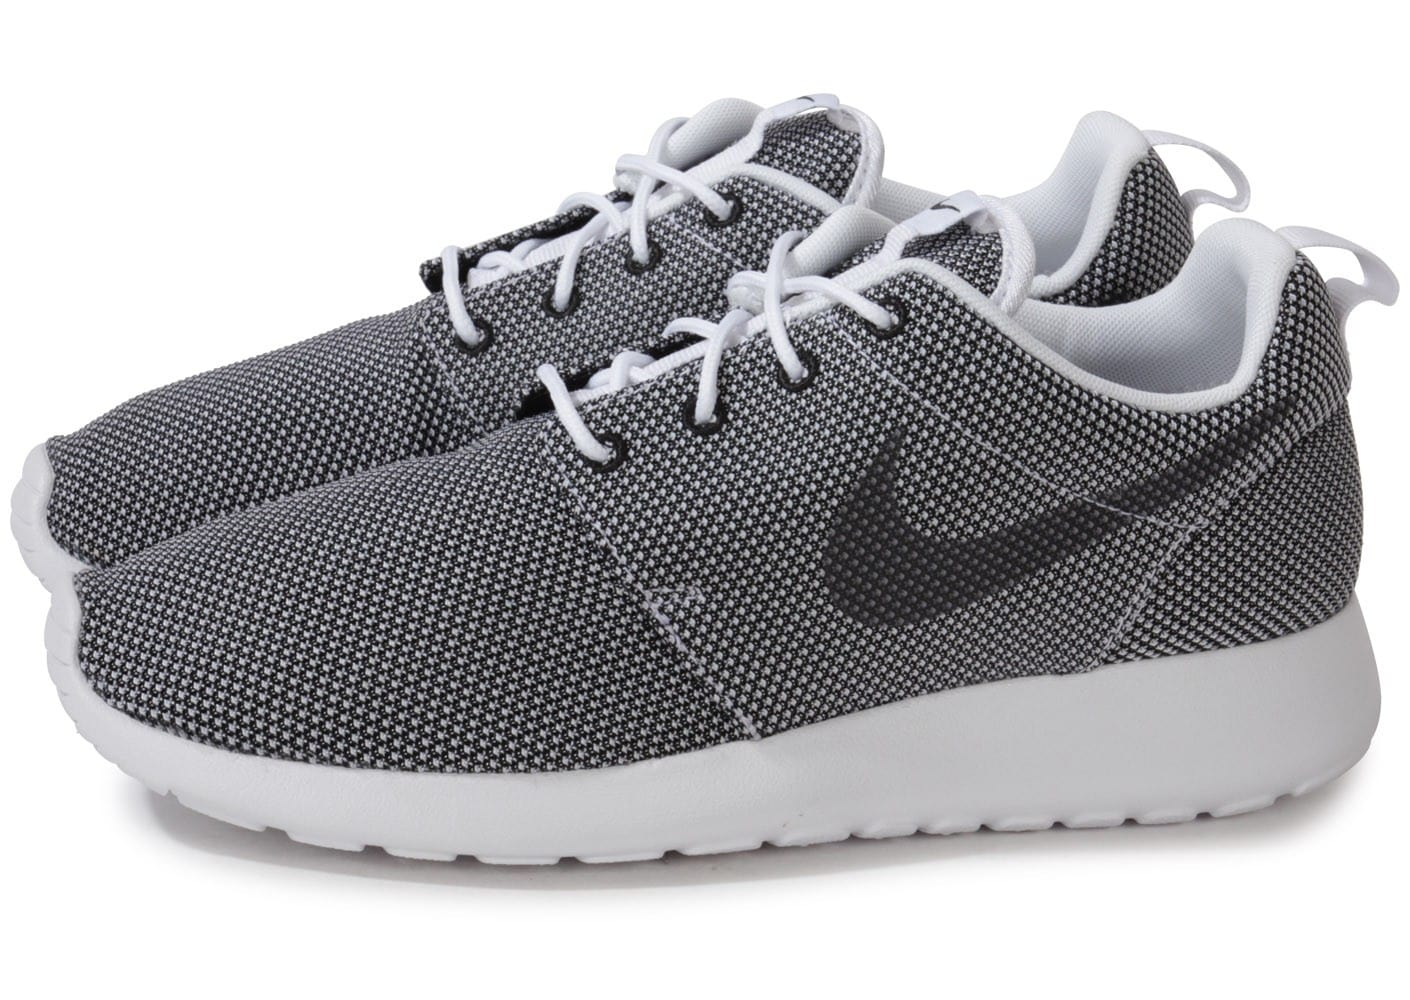 nike roshe run metallic silver chaussures homme chausport. Black Bedroom Furniture Sets. Home Design Ideas